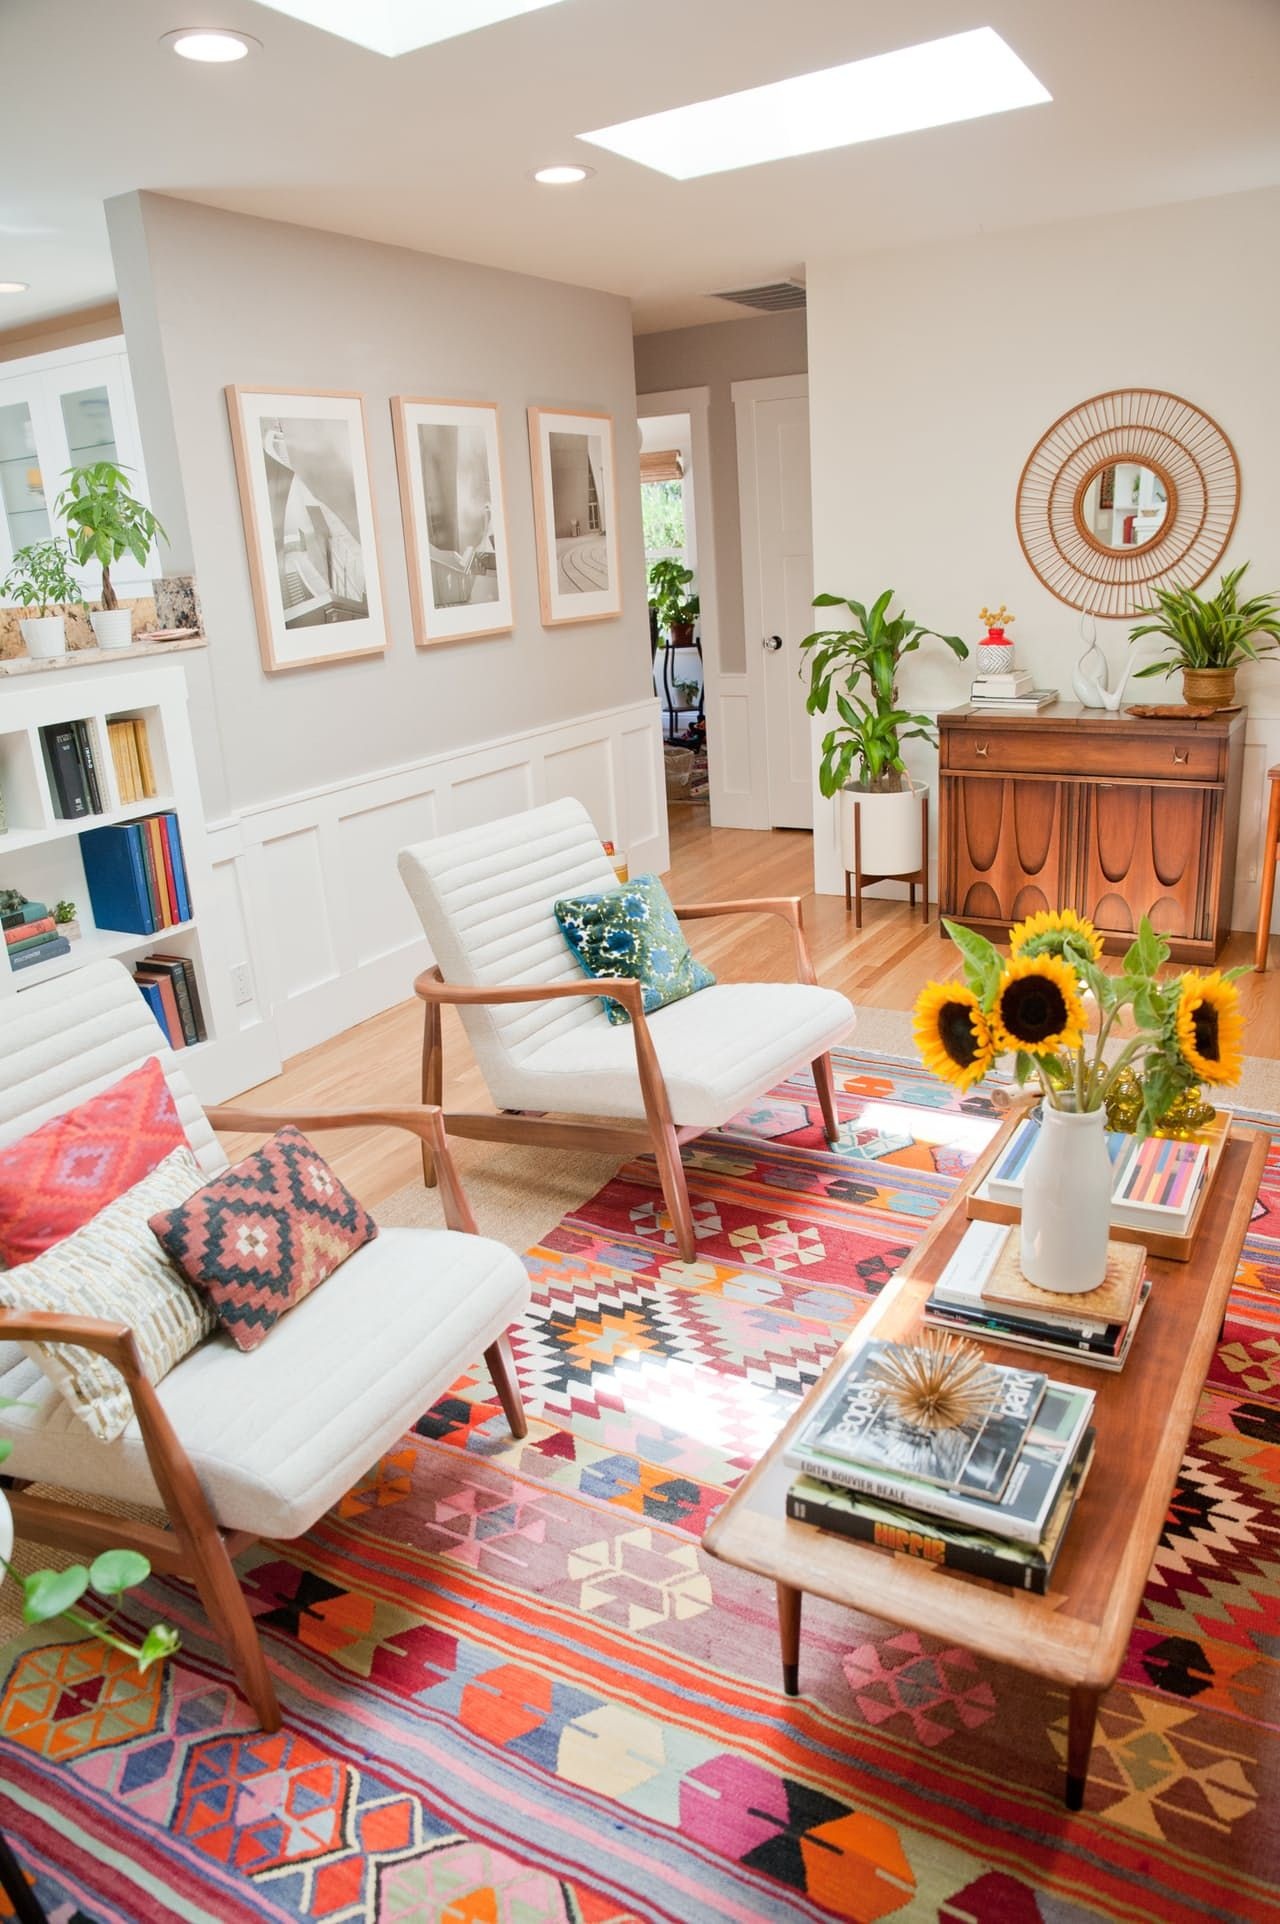 Innenarchitektur wohnzimmer für kleine wohnung house tour a cheery patterned oasis in california in   first